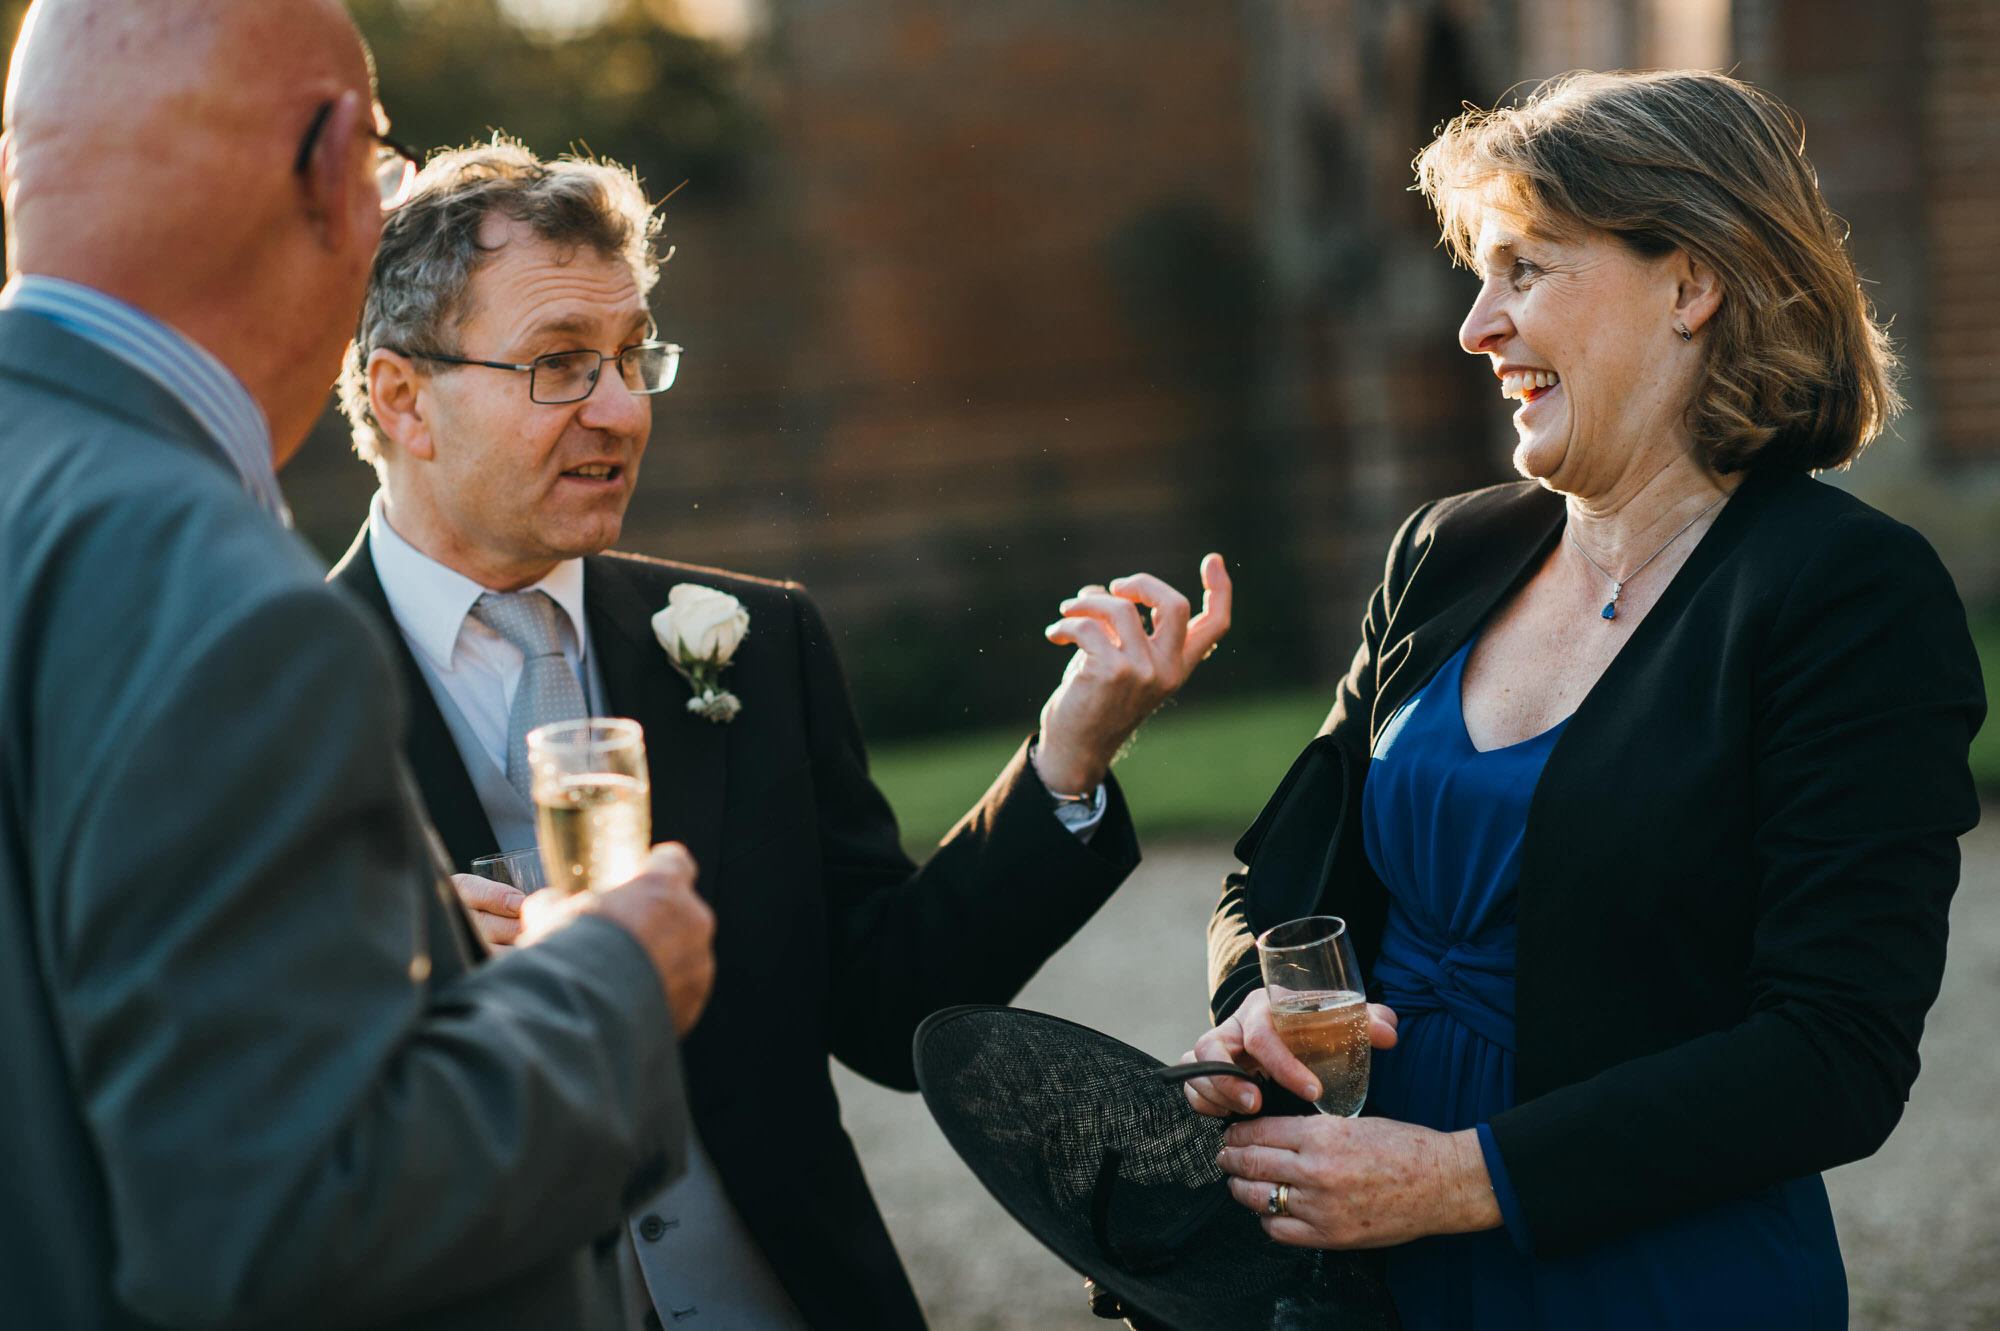 Crowcombe court drinks reception